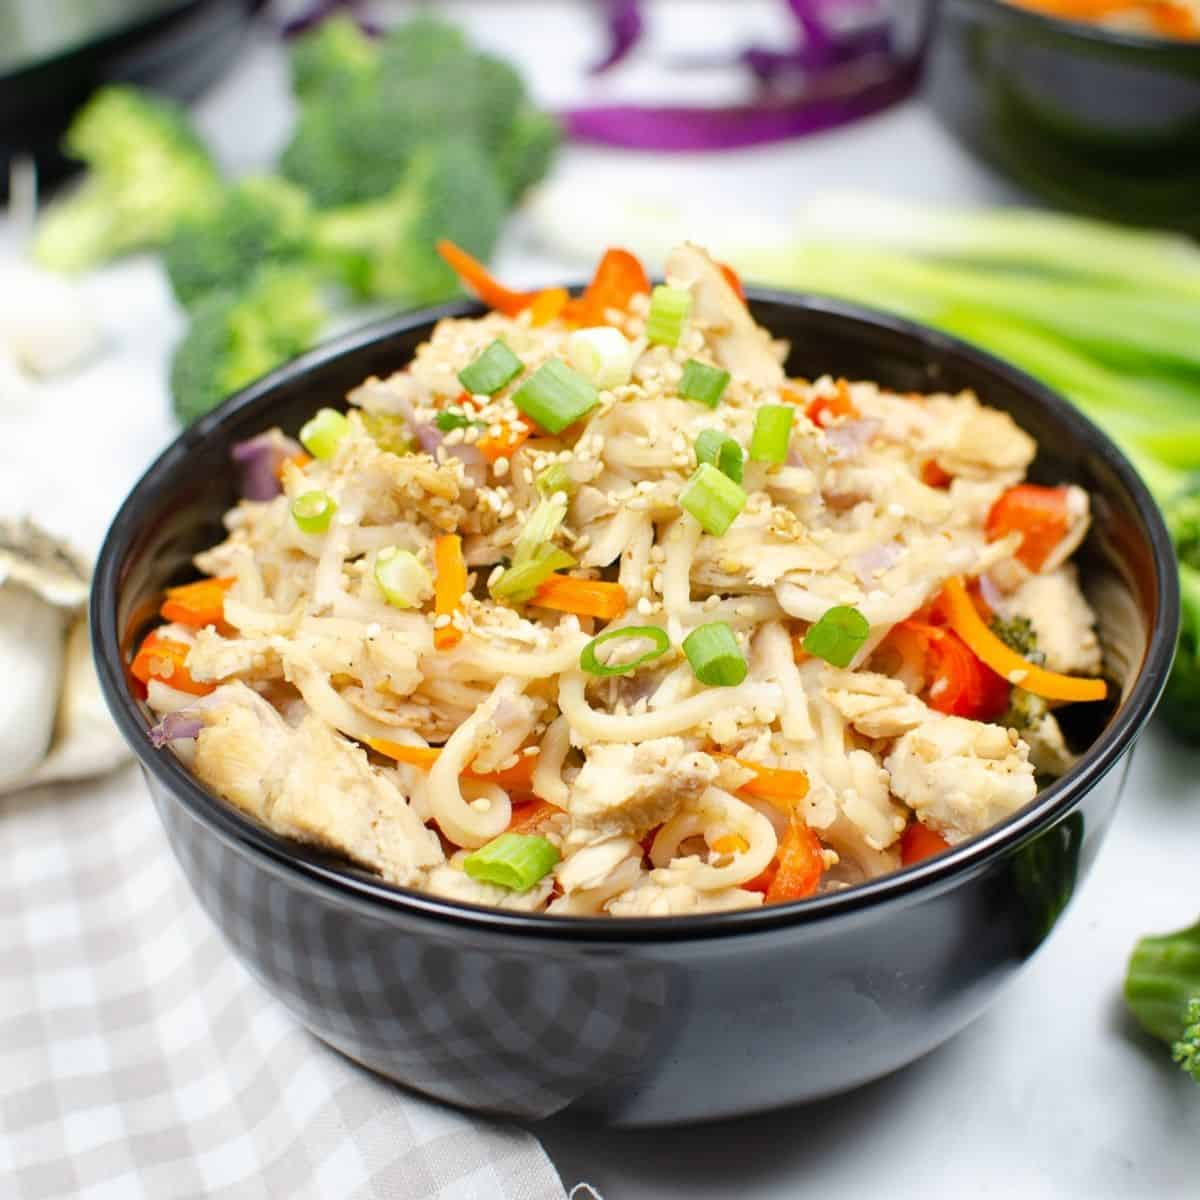 Chow mein noodles, veggies, and chicken in a bowl topped with green onions